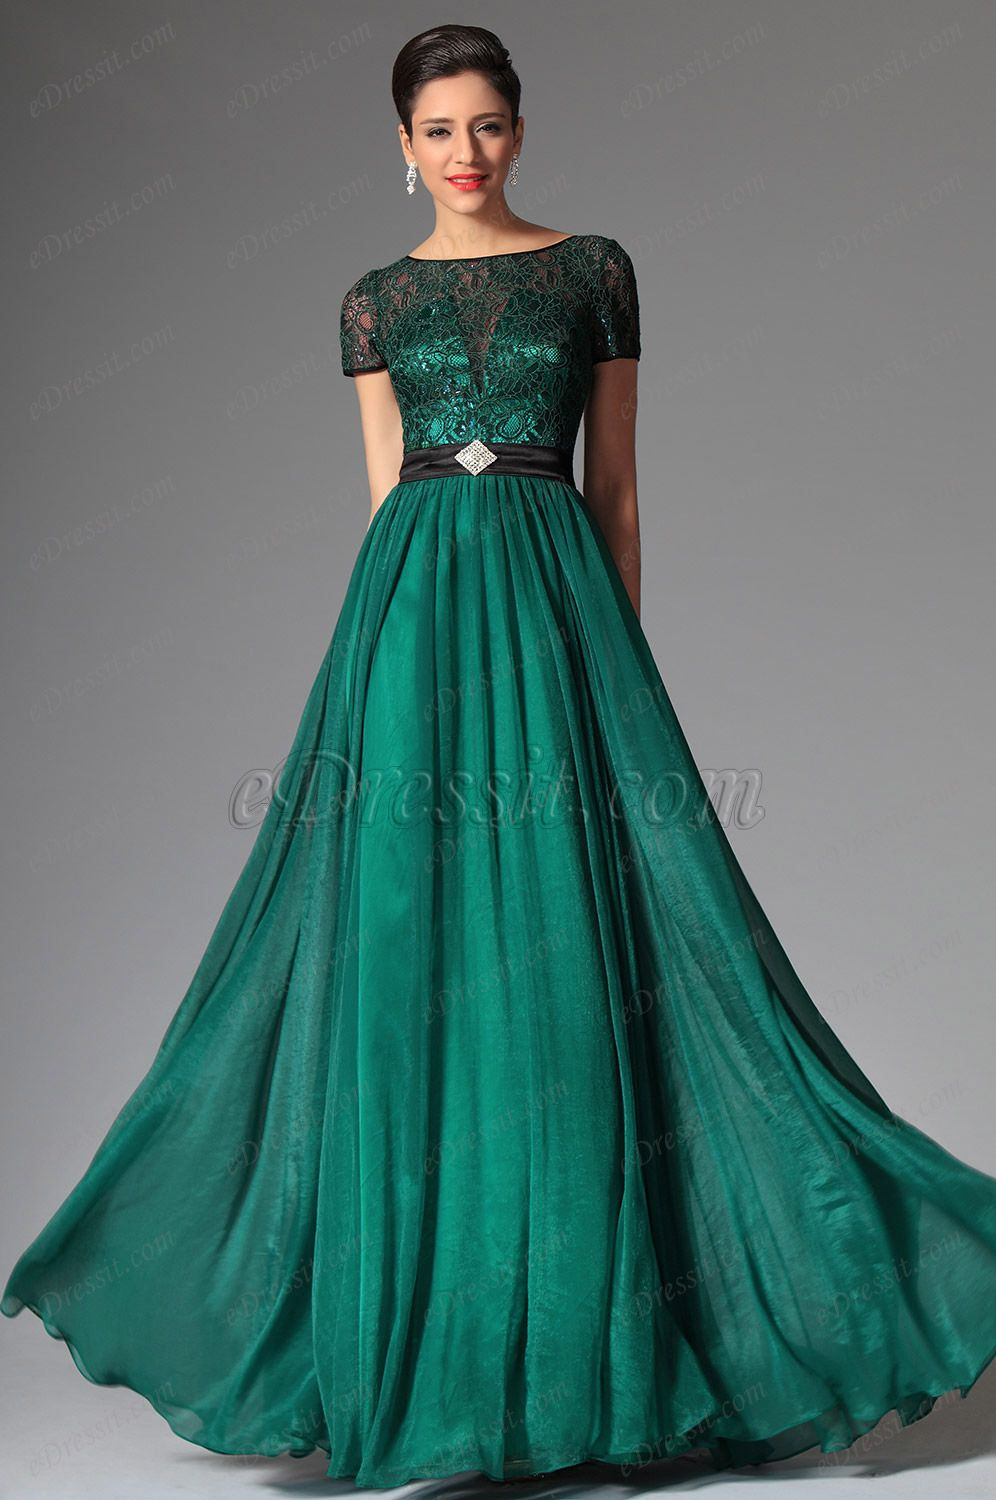 wonderful Dark green prom dress - unbelievable Dresses ideas. Dark ...